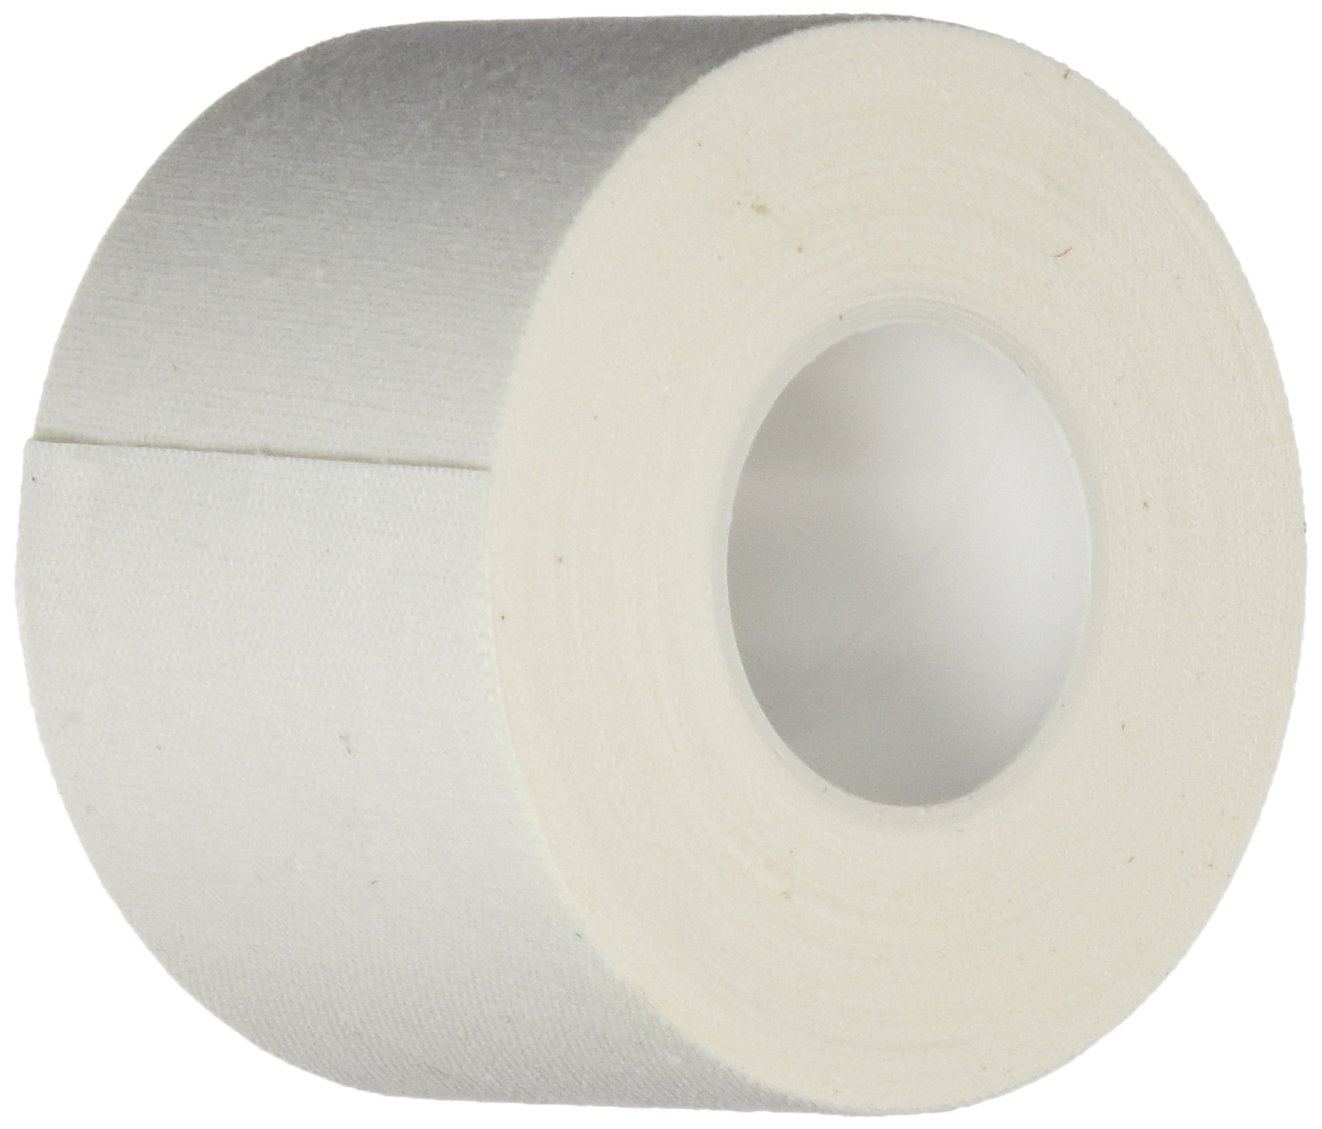 MPOWERED BASEBALL Premium Baseball Bat Tape (32 Tape Rolls), White